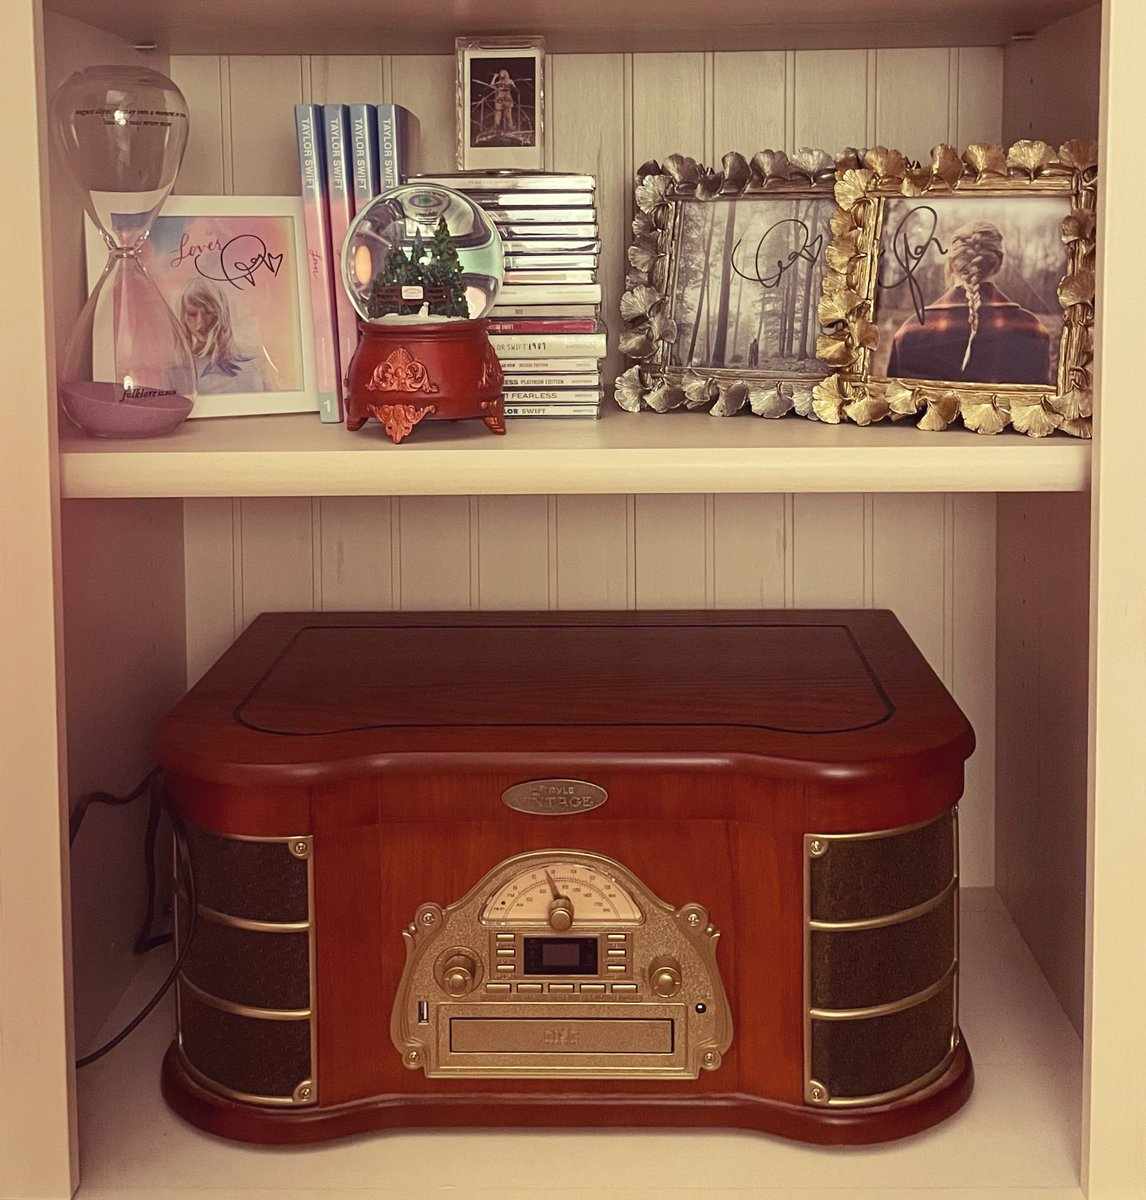 our new vinyl player arrives tomorrow. so I had to find a place for our other one to live. I think it's officially found it's new home in my home office under my taylor shelf. 💛✨🎶 #vinyl #records #taylorswift #homeoffice #treasures @taylornation13 @taylorswift13 https://t.co/6lN3uKJ4Nn